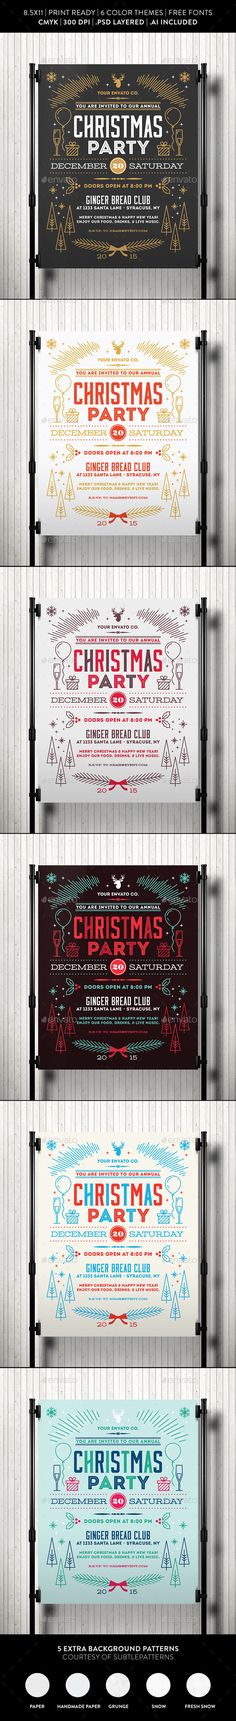 Christmas Party Flyer Template   Flyer Template Party Flyer And